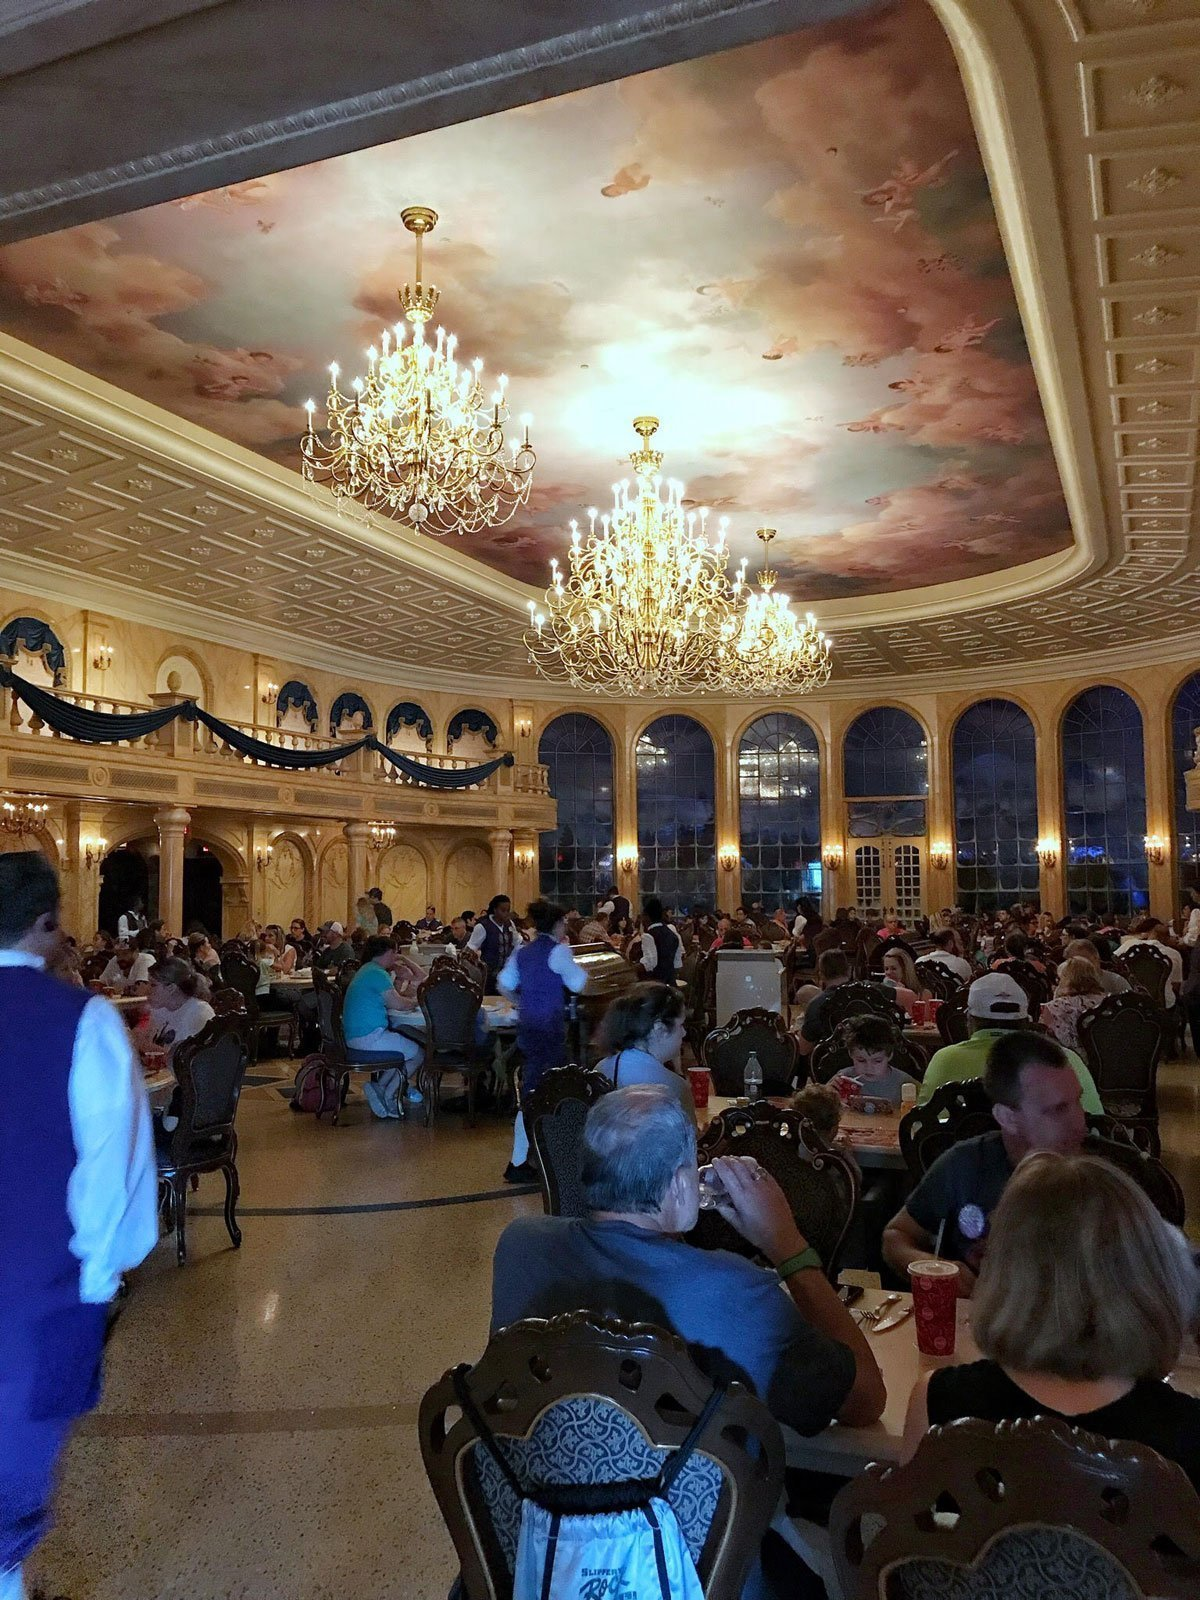 Disney's Magic Kingdom Be Our Guest Restaurant ballroom